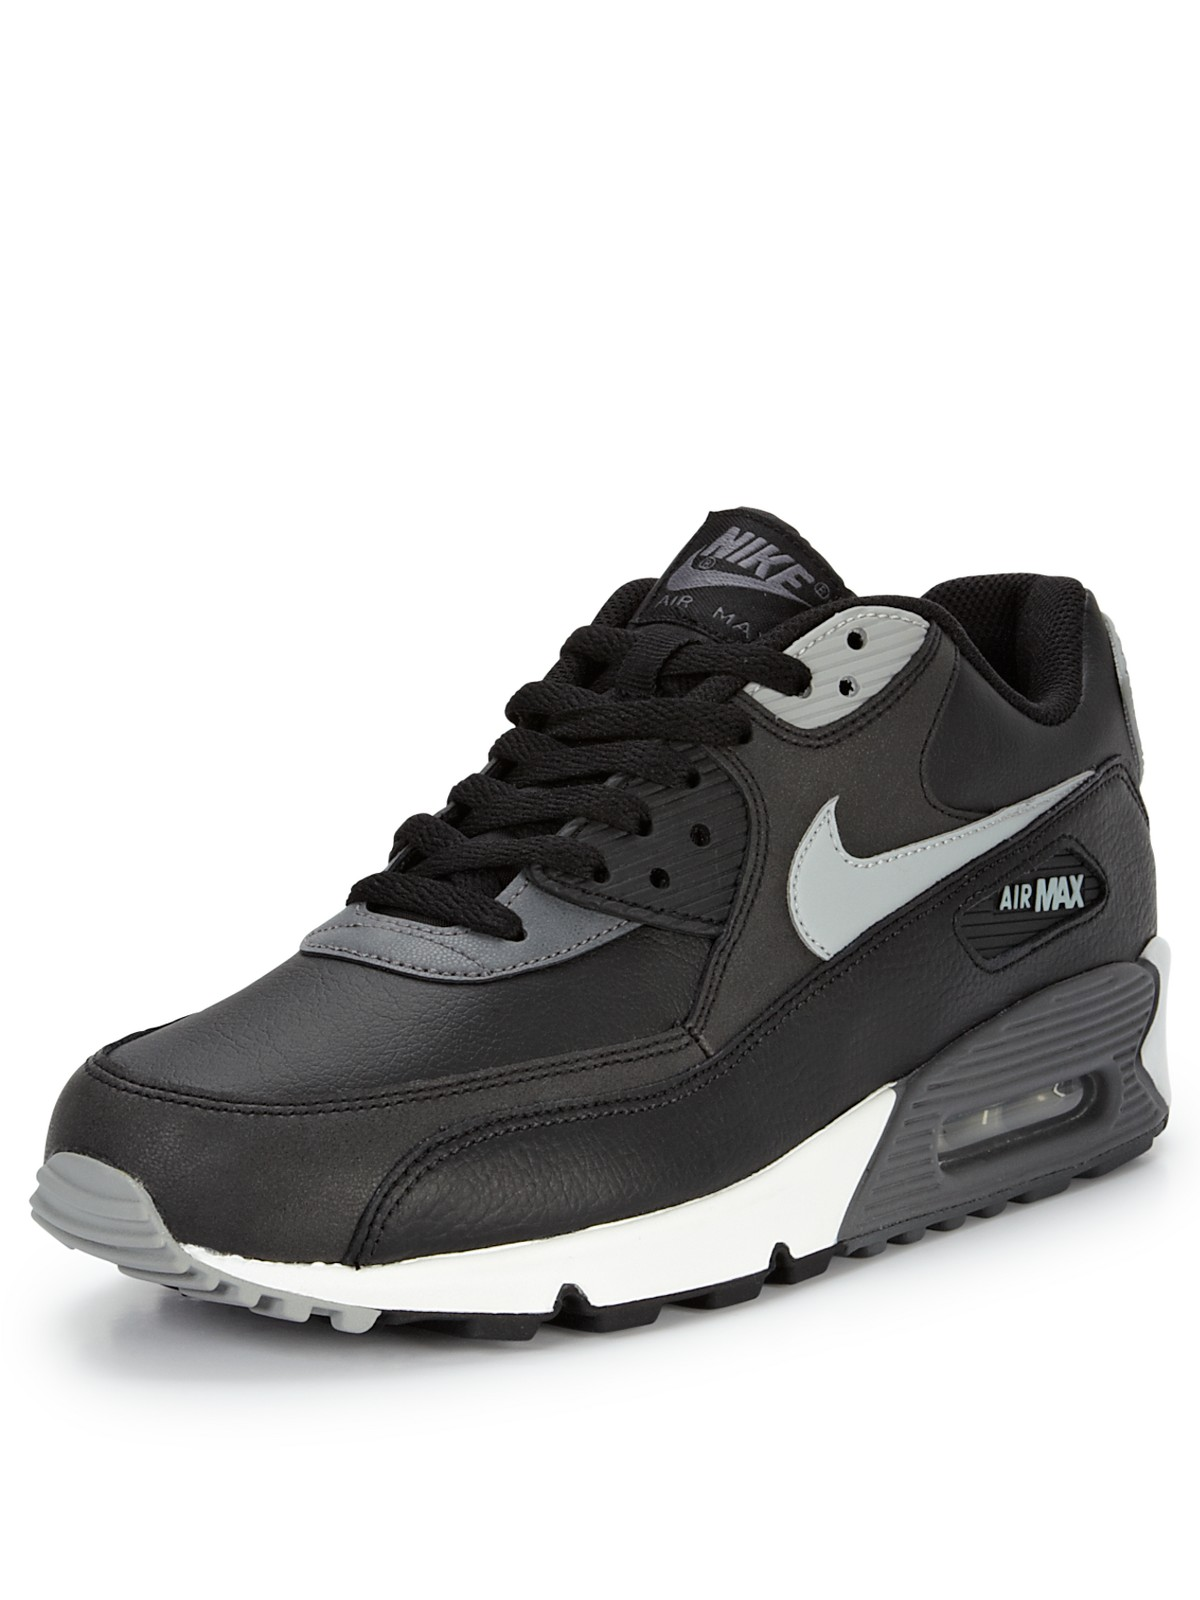 nike air max 90 essential mens trainers in black for men. Black Bedroom Furniture Sets. Home Design Ideas